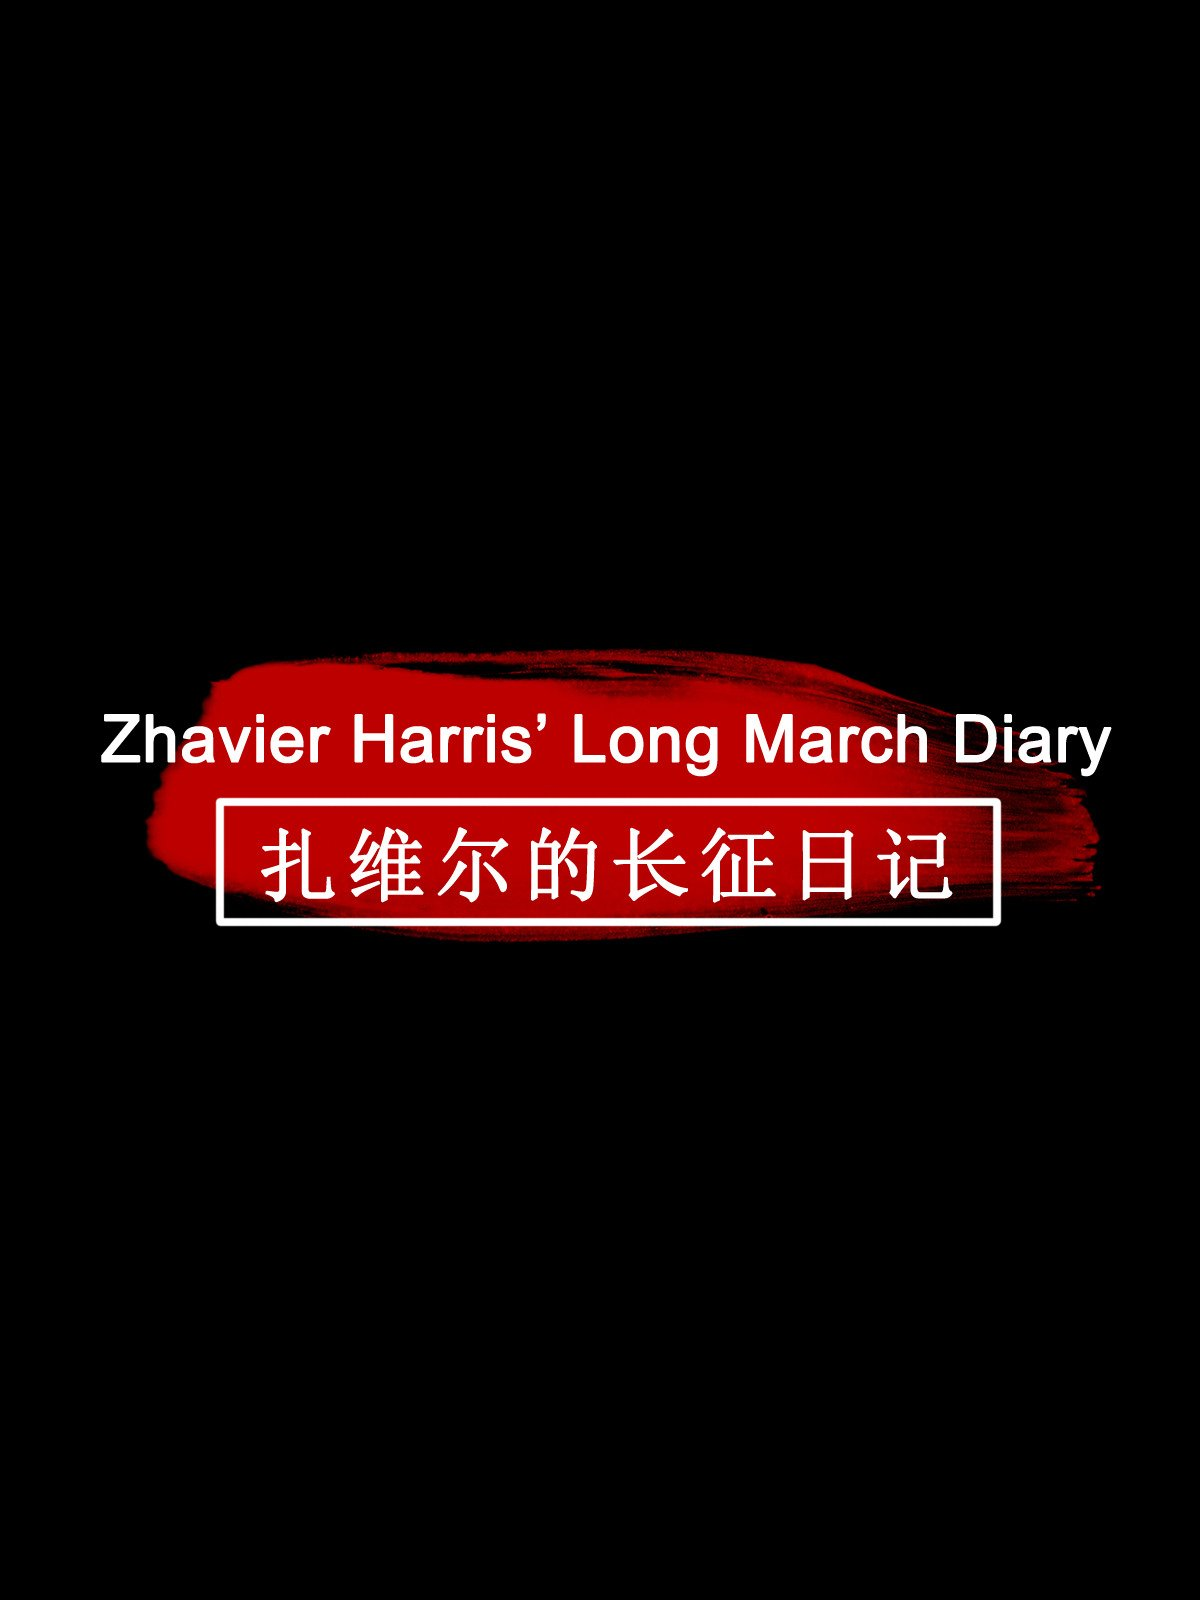 Zhavier Harris' Long March Diary